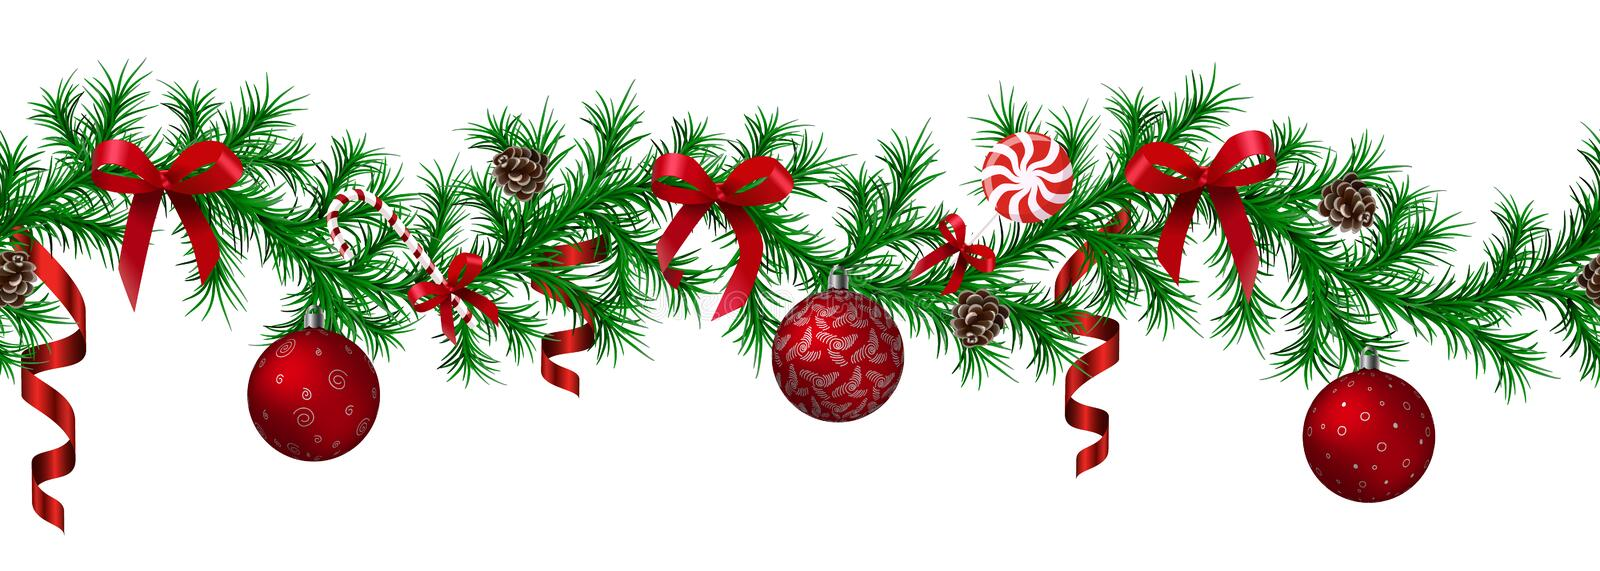 Christmas fir border with hanging garland, fir branches, red and silver baubles, pine cones and other ornaments stock illustration